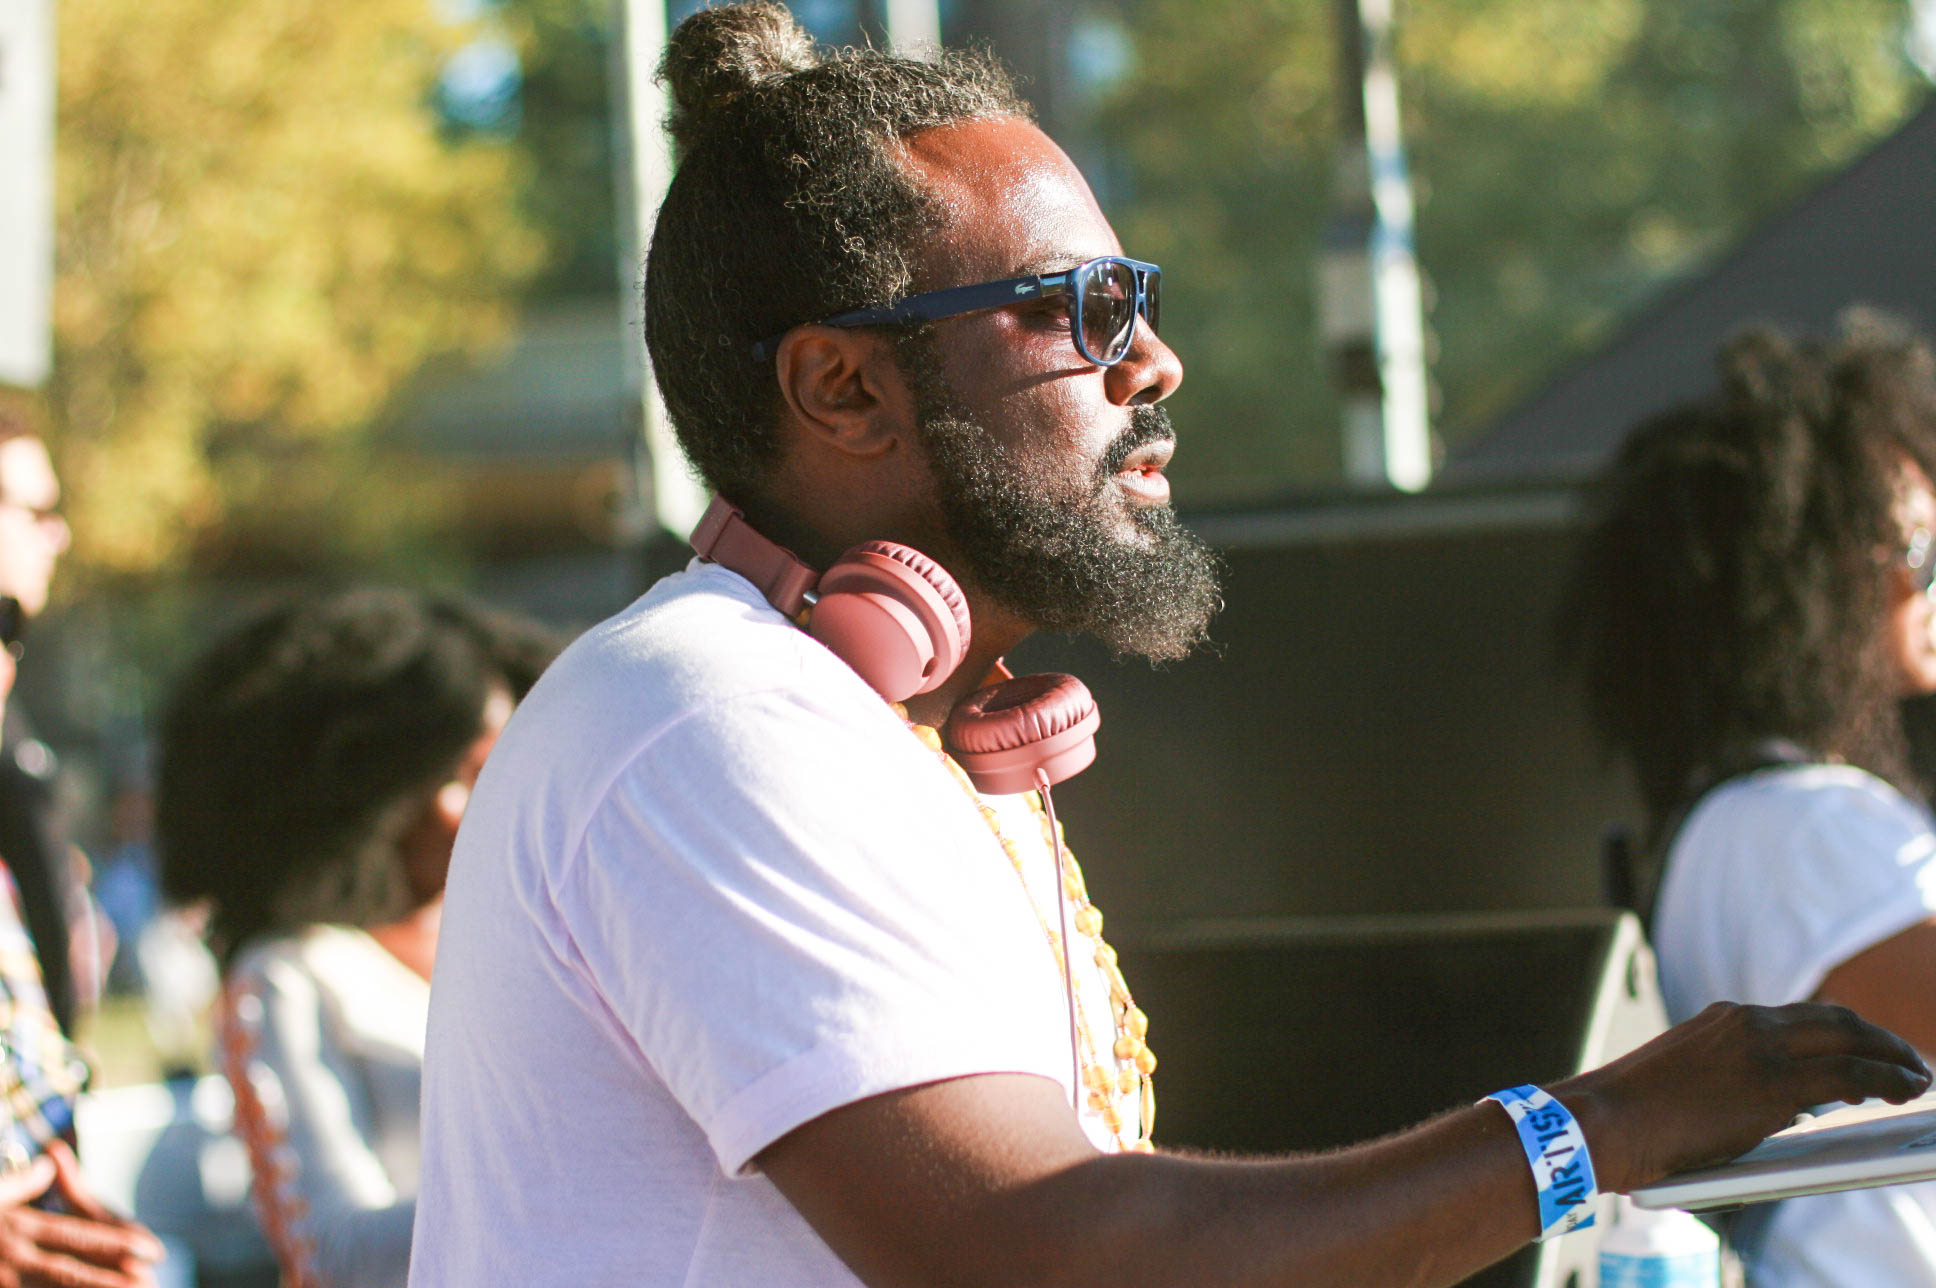 @djmoma during his set at #Afropunkfest .